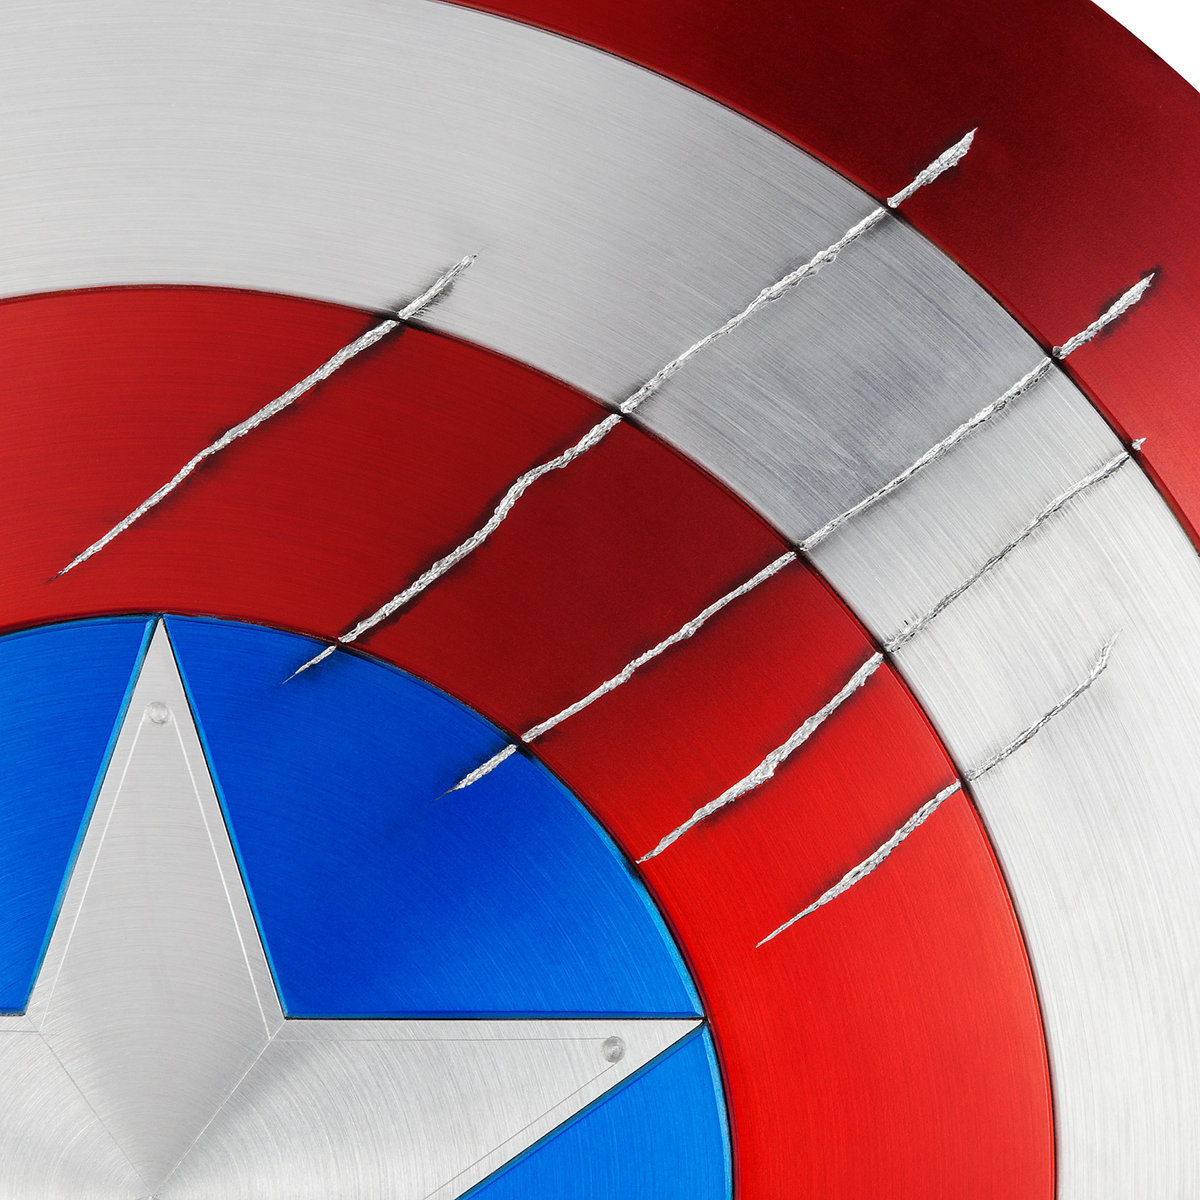 Marvel Masterworks Collection Captain America Shield With Black Panther Claw Marks Out Now Diskingdom Com Disney Marvel Star Wars Video Game News